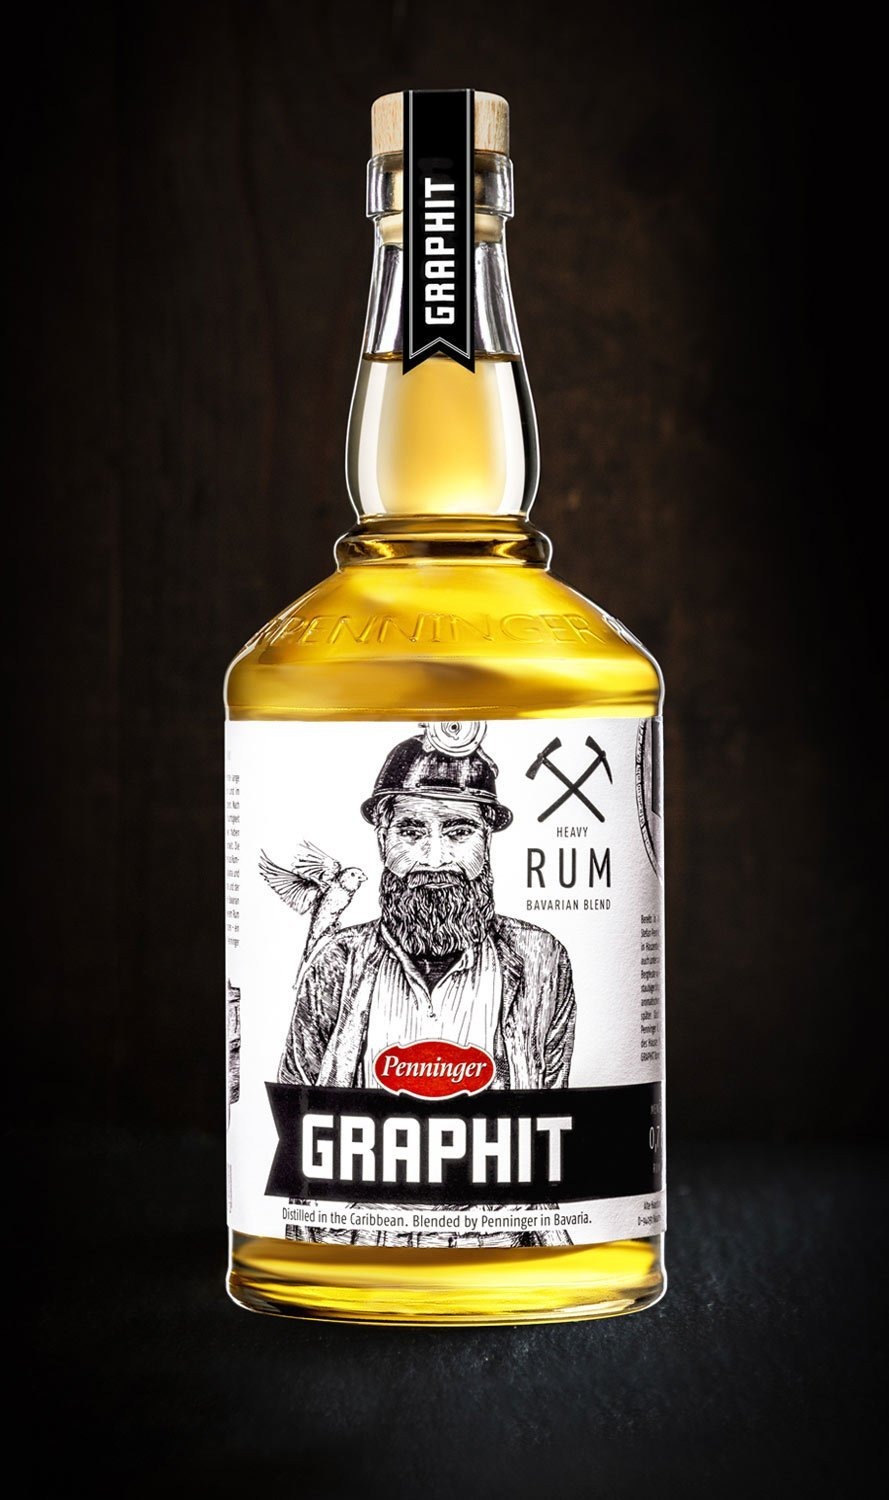 GRAPHIT - Bavarian Blend Heavy Rum 0.7l - INSELLIEBE Store - Insel Usedom